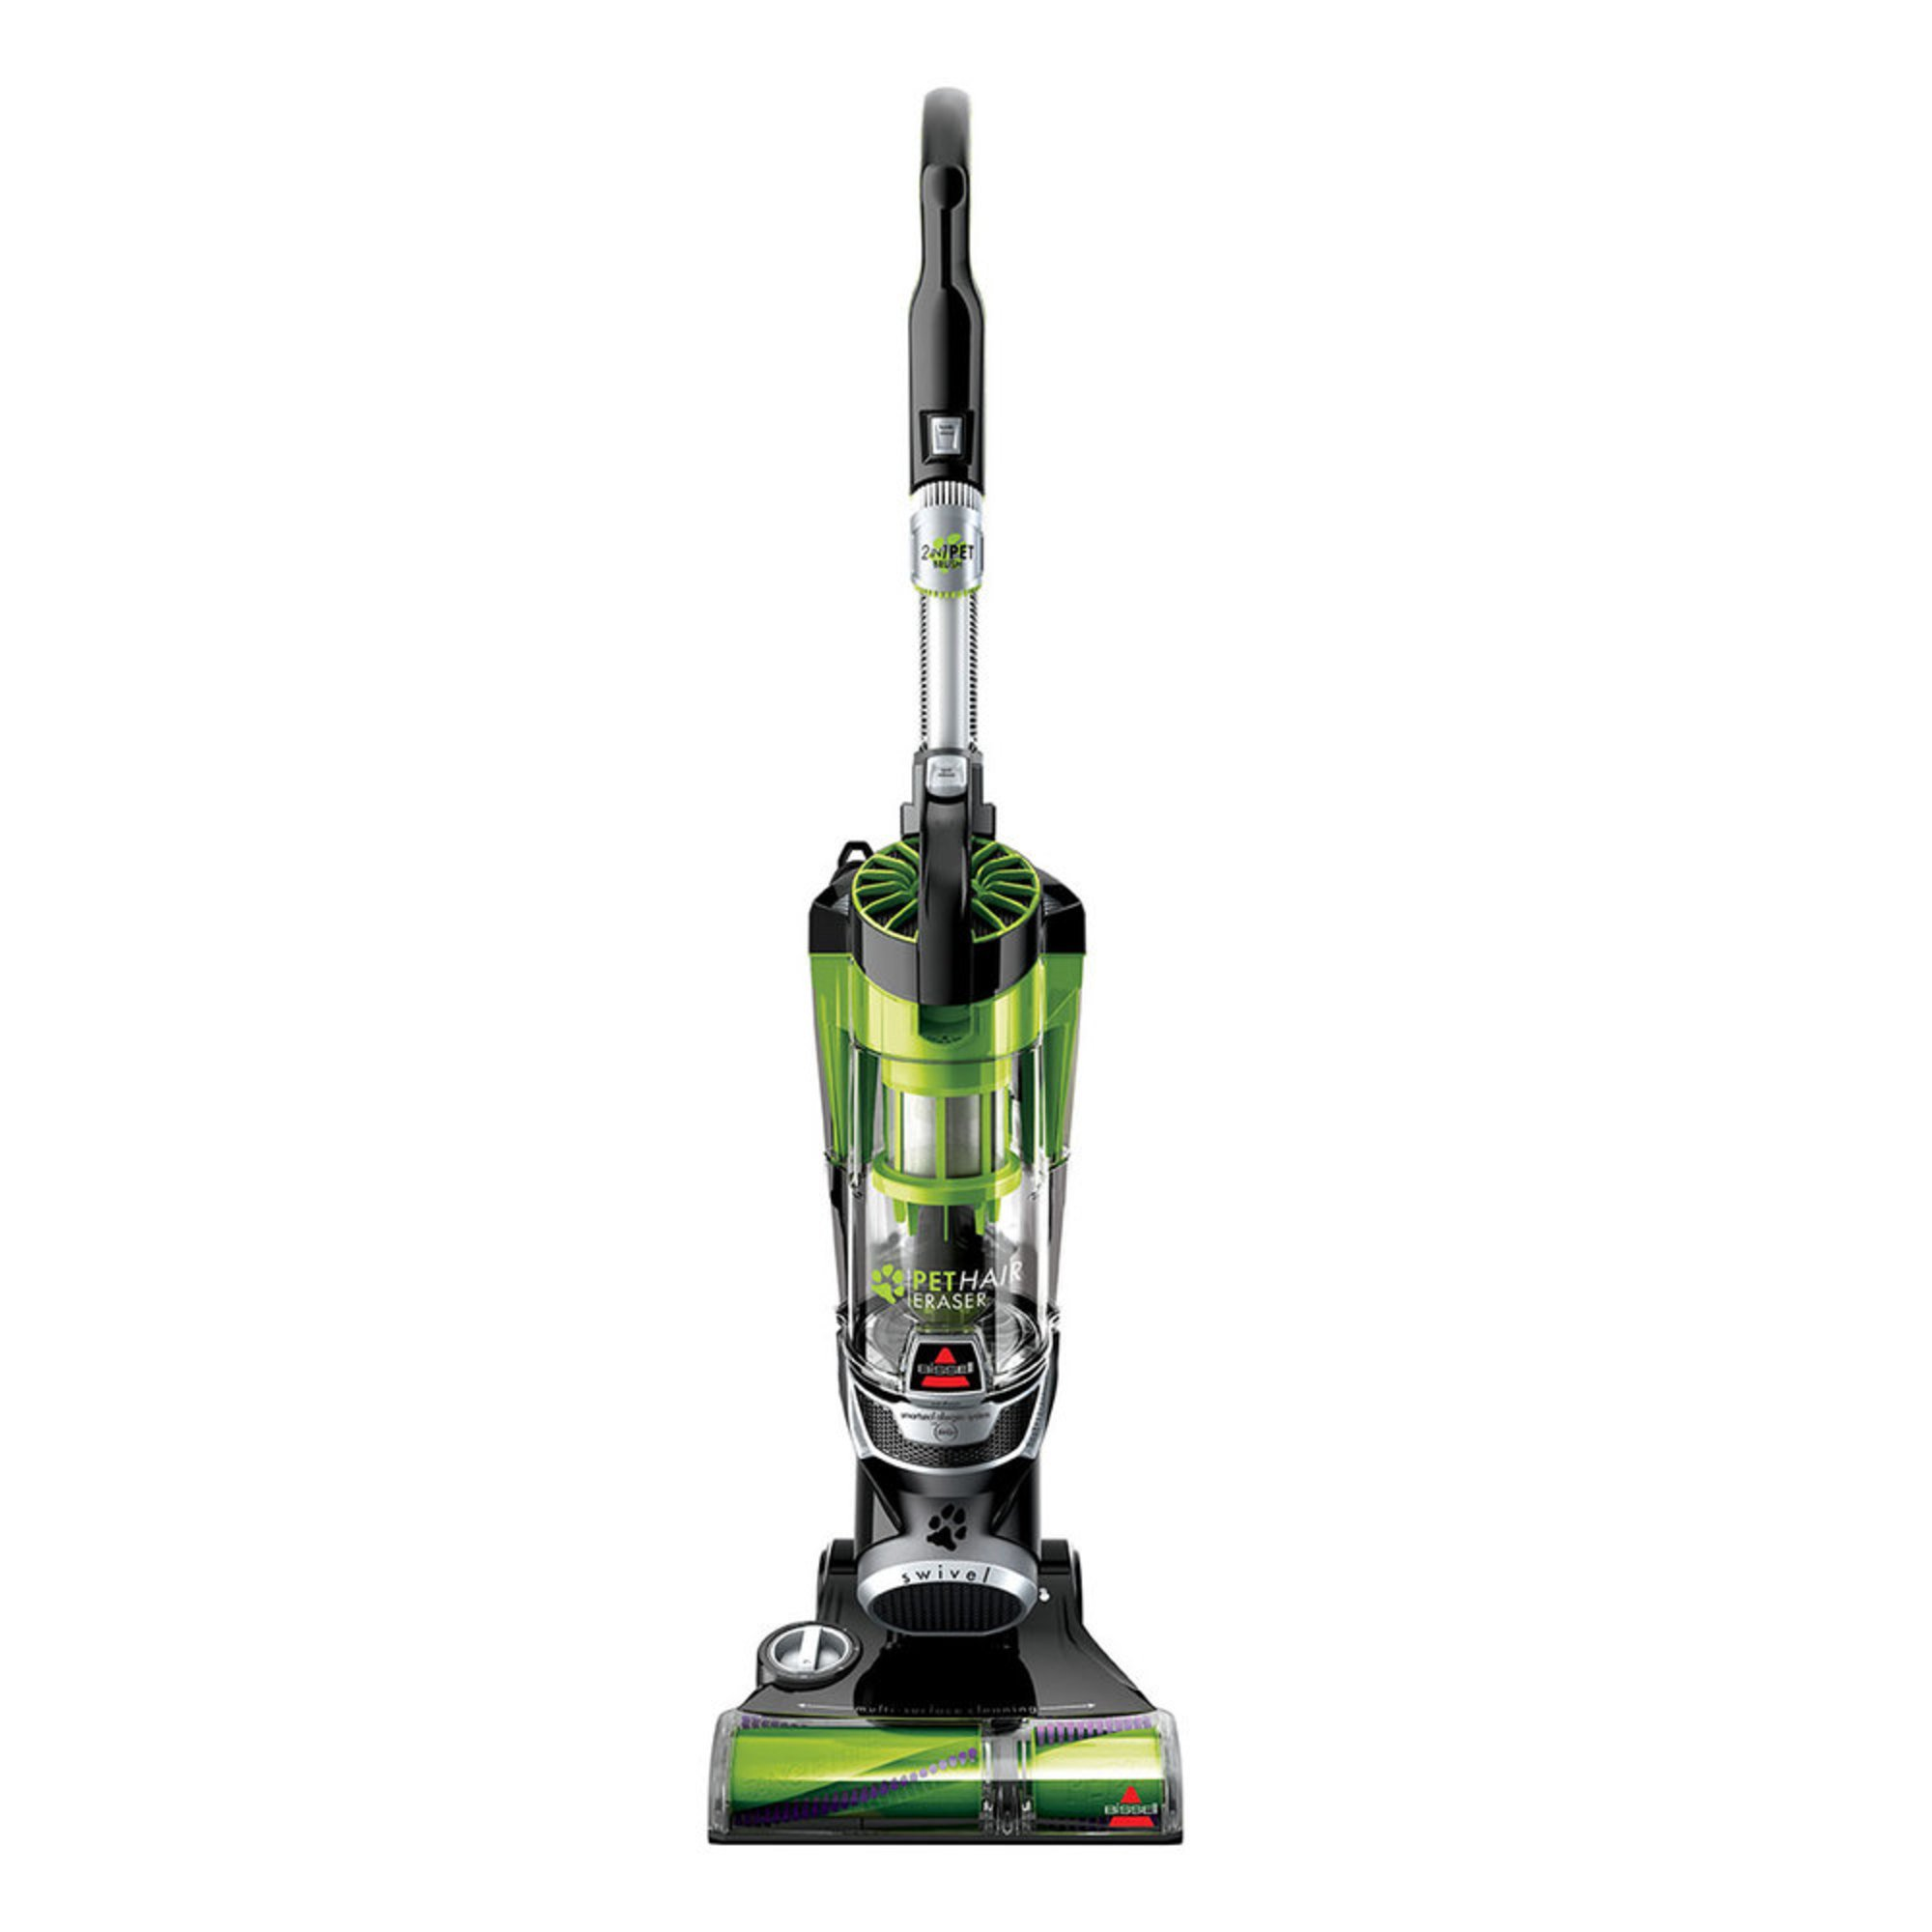 Bissell pet hair eraser vacuum 1650 specialty vacuums for pets bissell dailygadgetfo Image collections